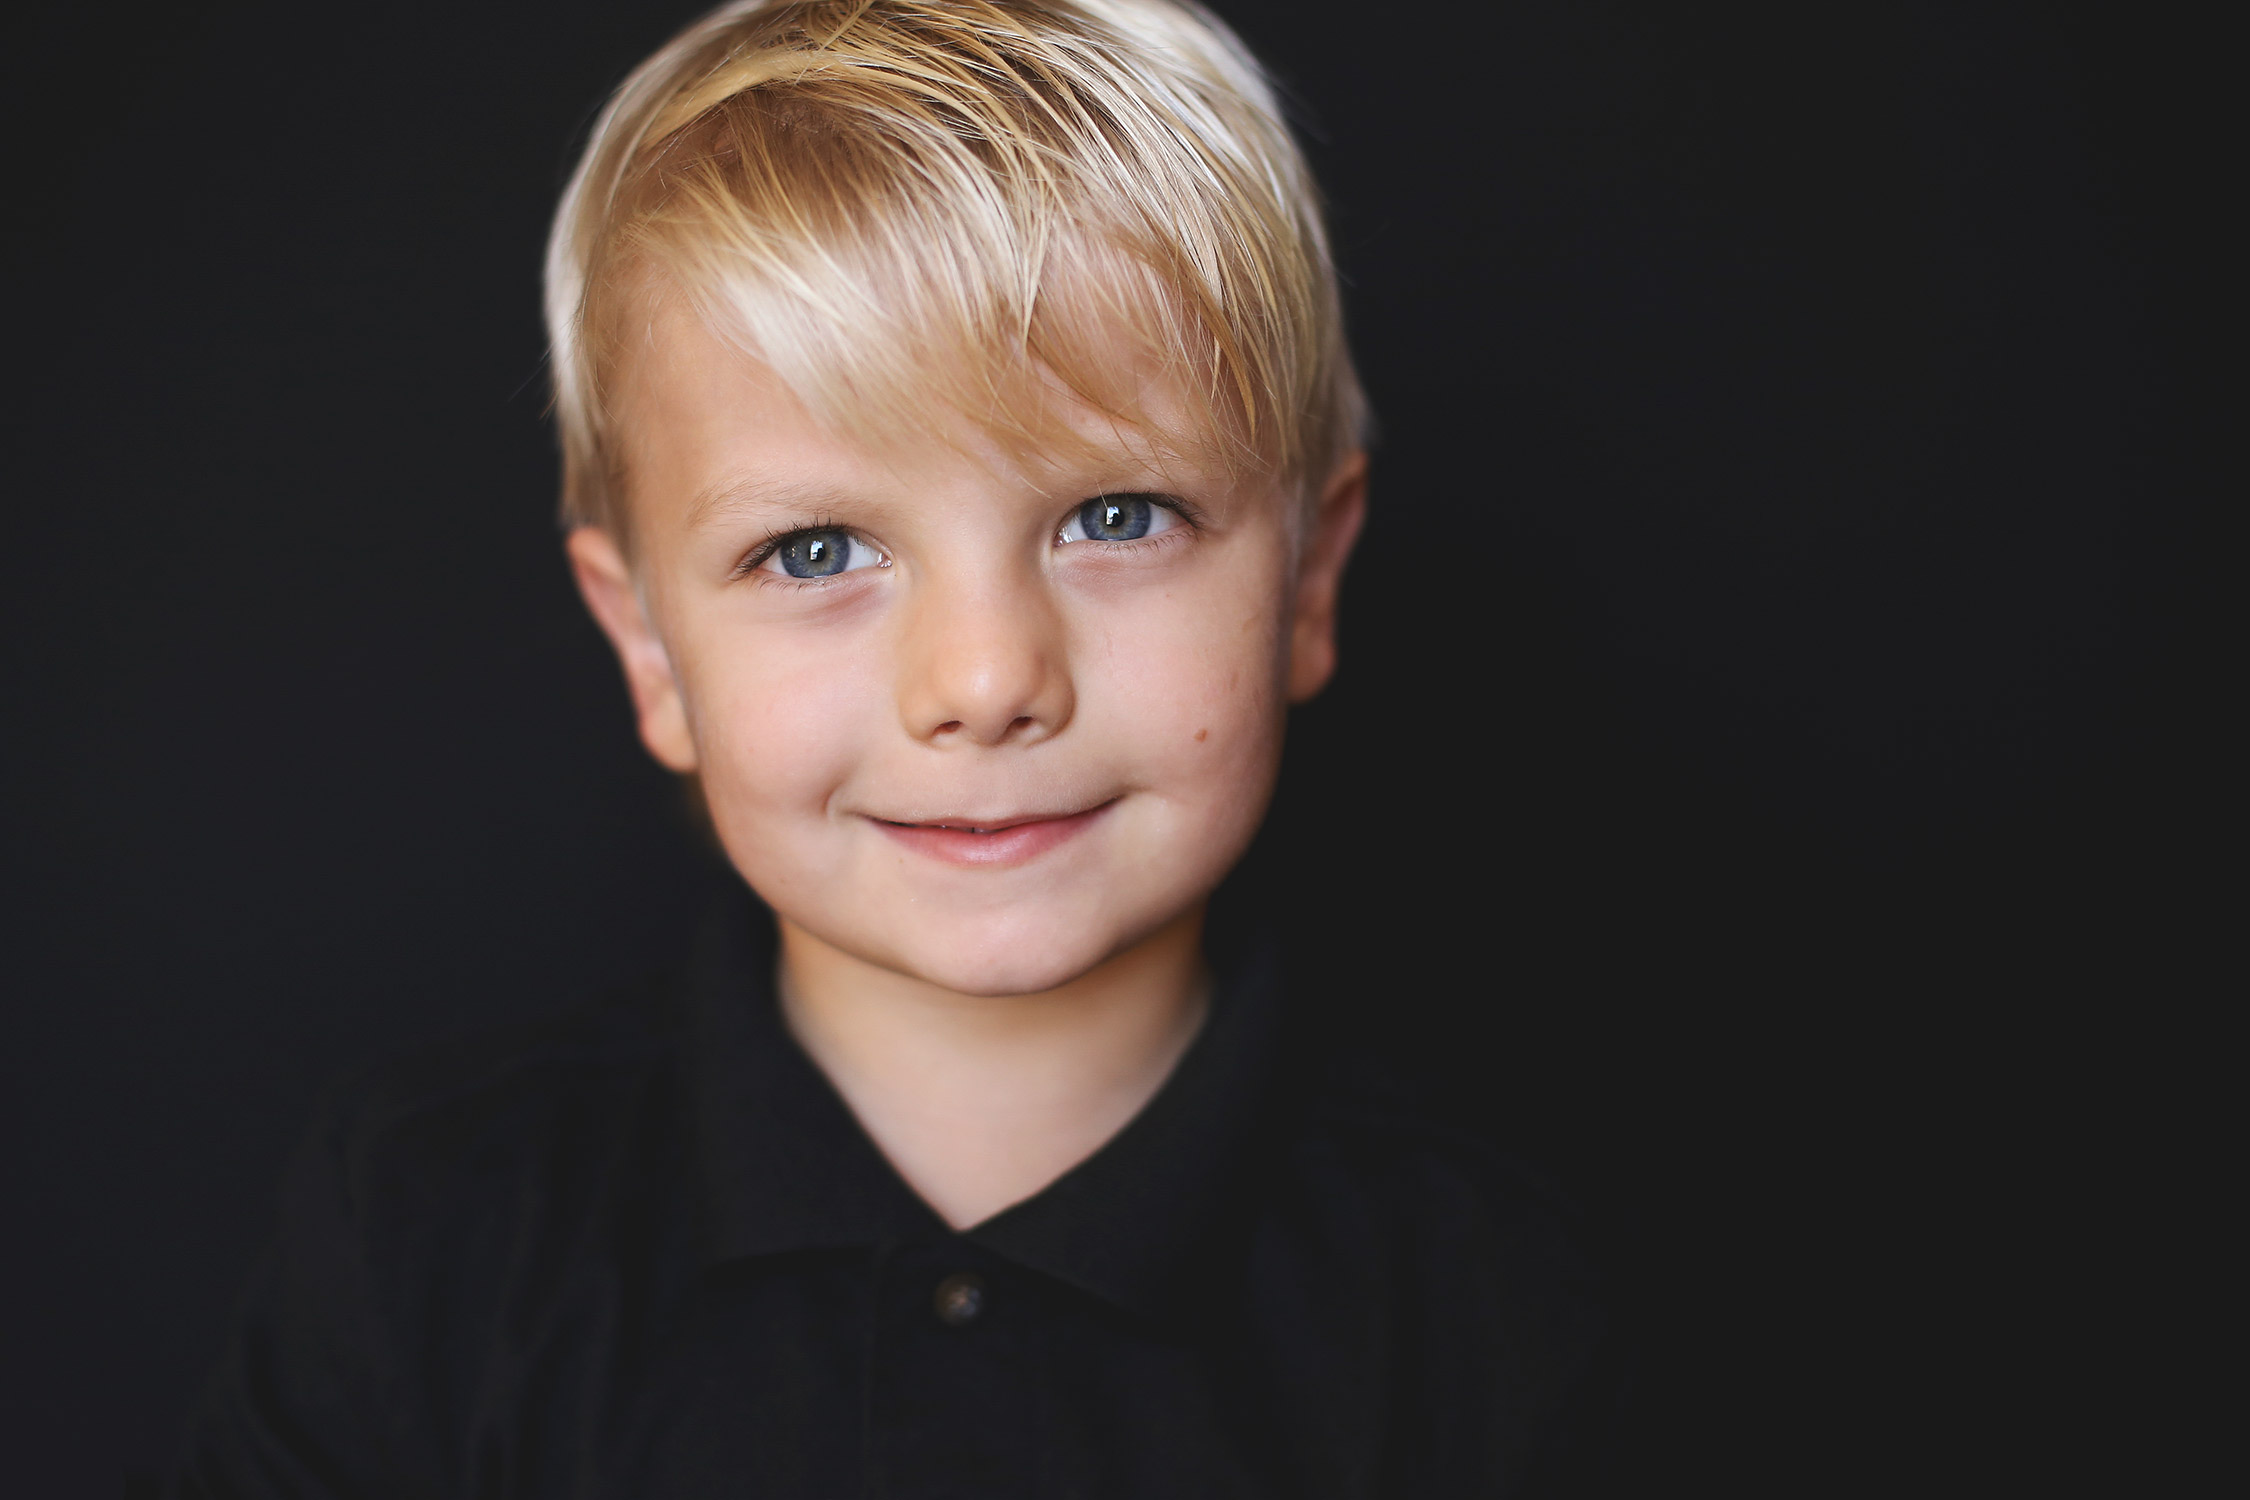 Blonde haired young boy smiling at camera   St. Louis School Photography